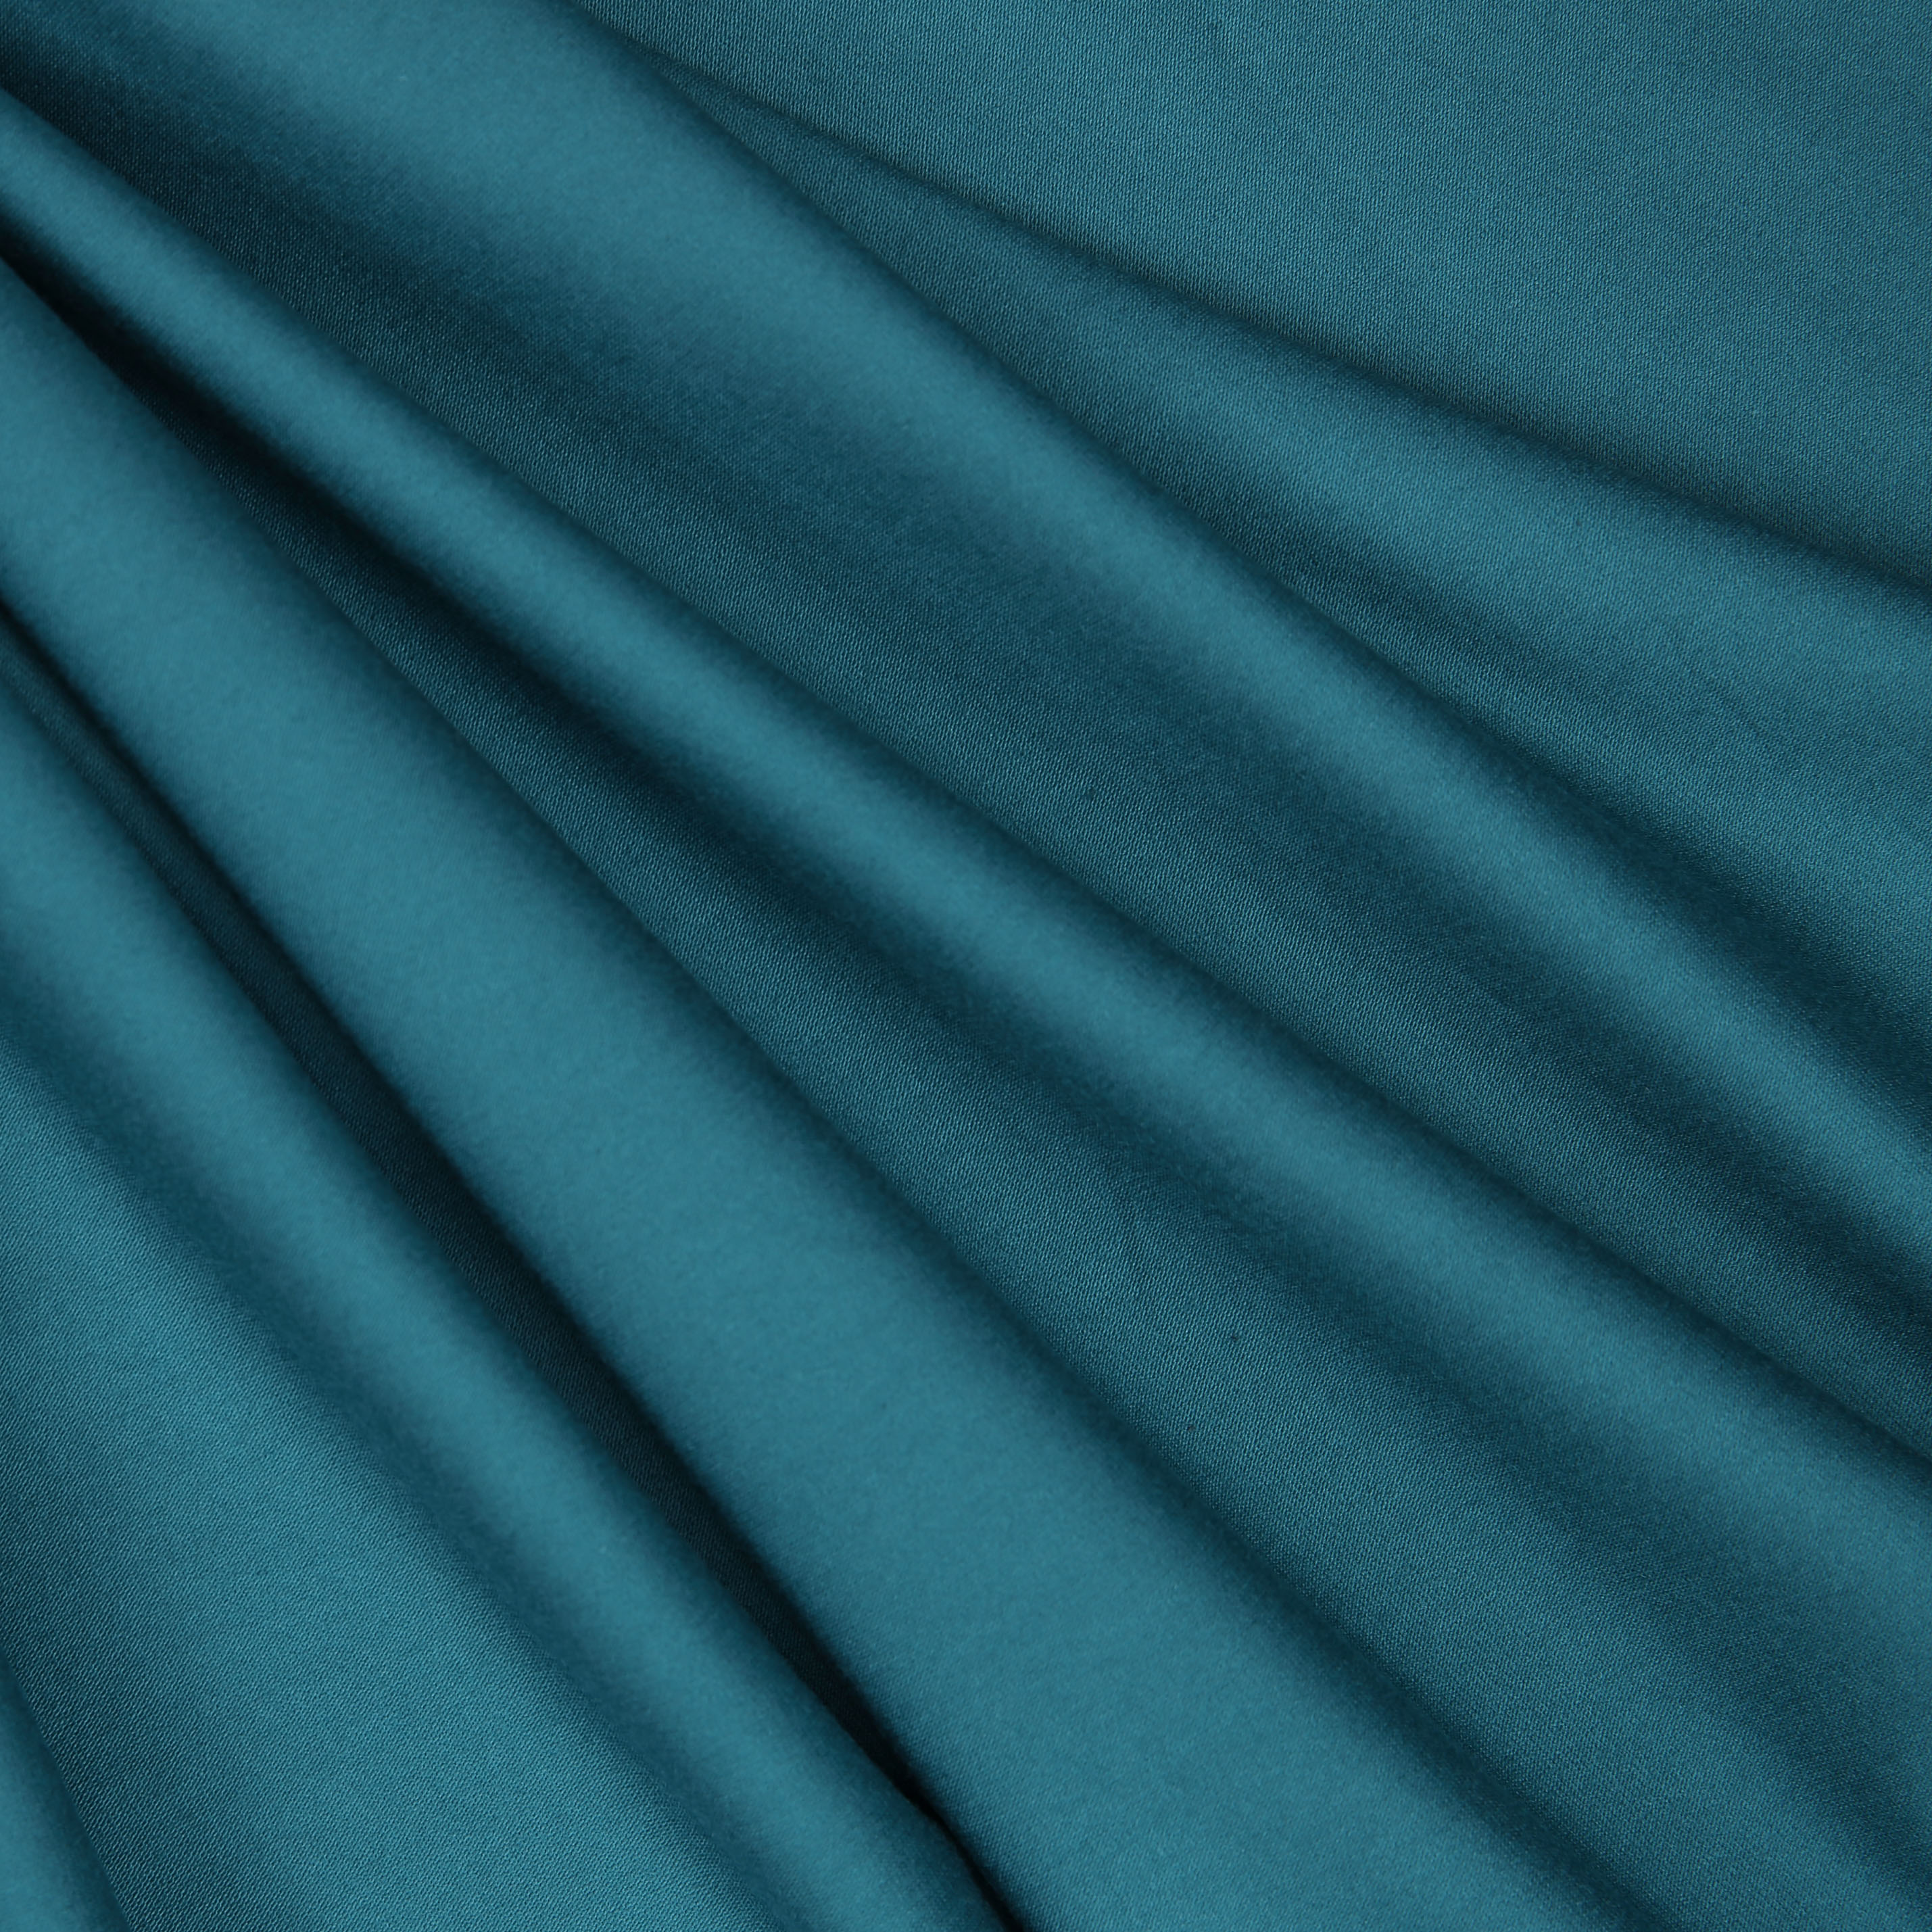 Fabric Jersey turquoise